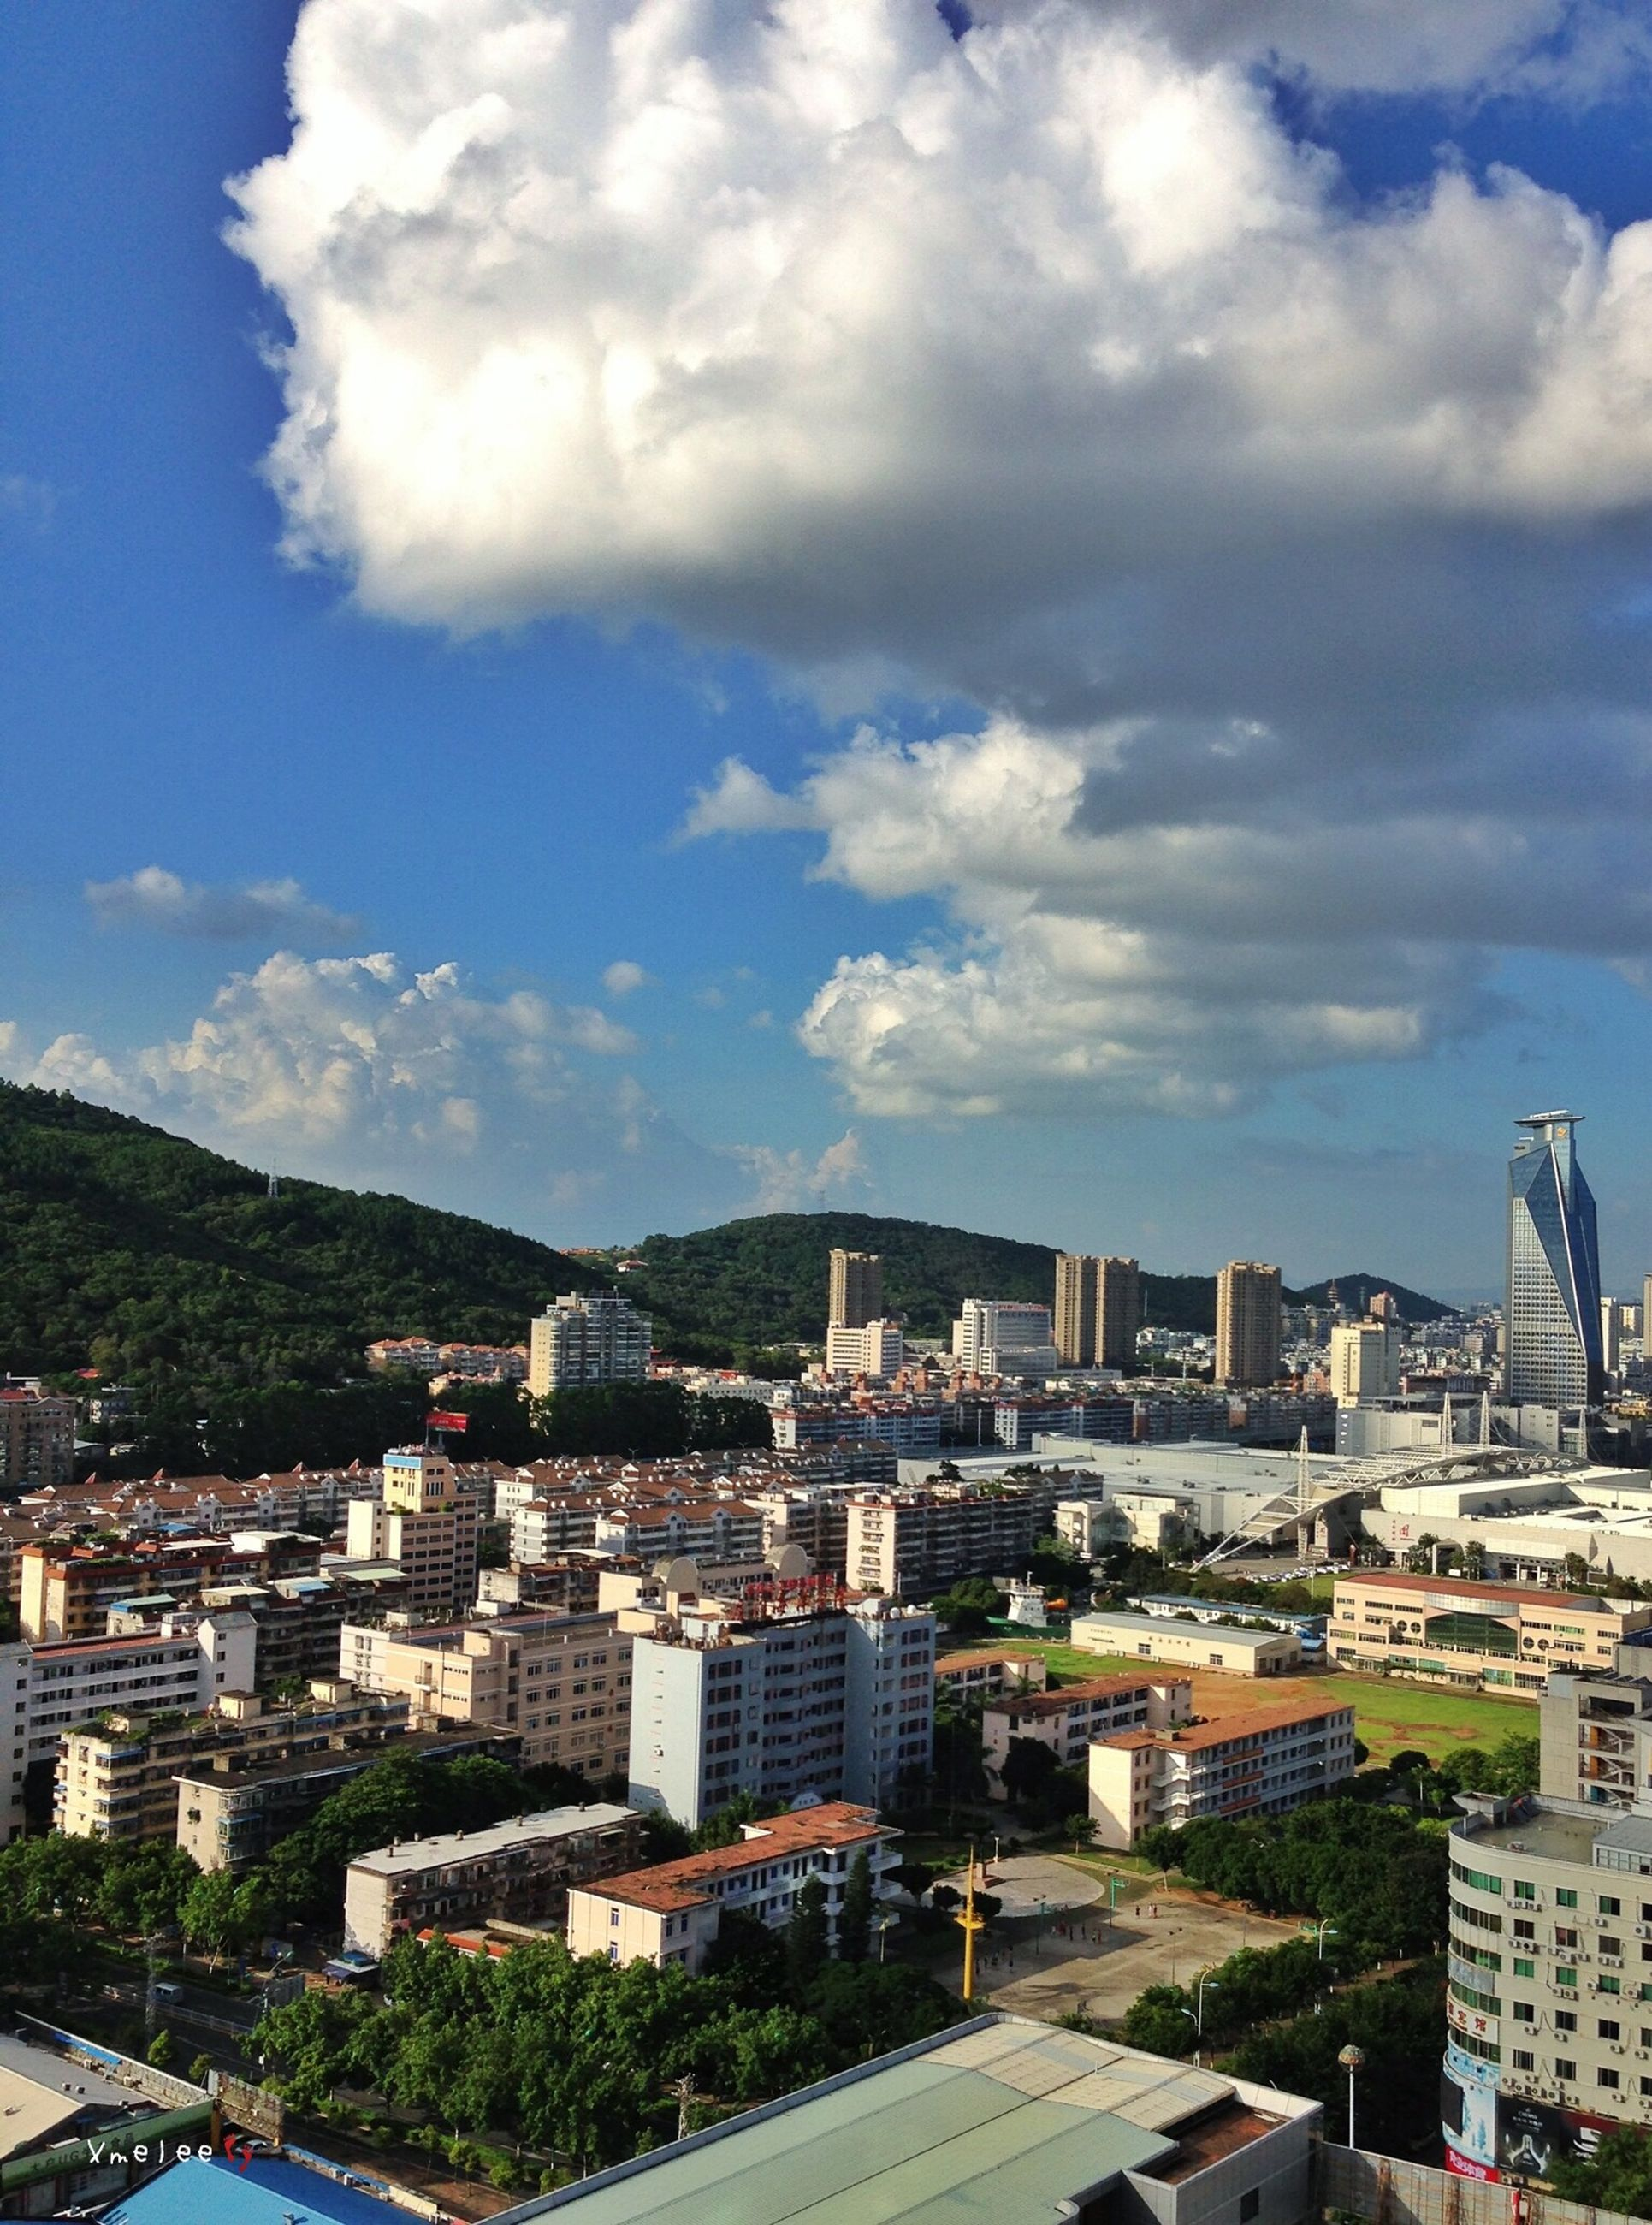 building exterior, architecture, built structure, cityscape, city, sky, cloud - sky, residential district, crowded, high angle view, residential building, cloud, residential structure, cloudy, mountain, blue, day, town, outdoors, city life